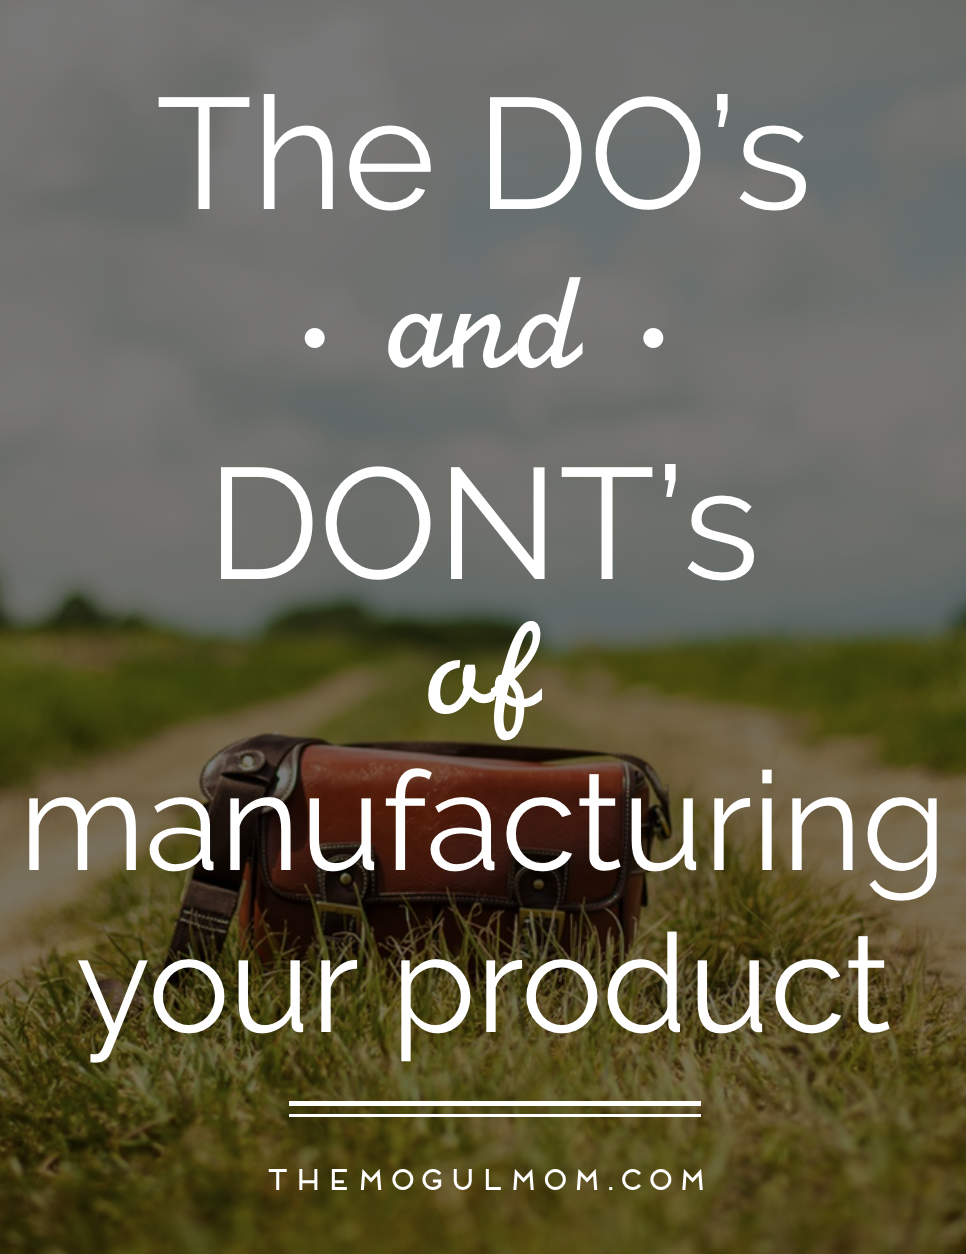 Manufacturing Do's & Don't's